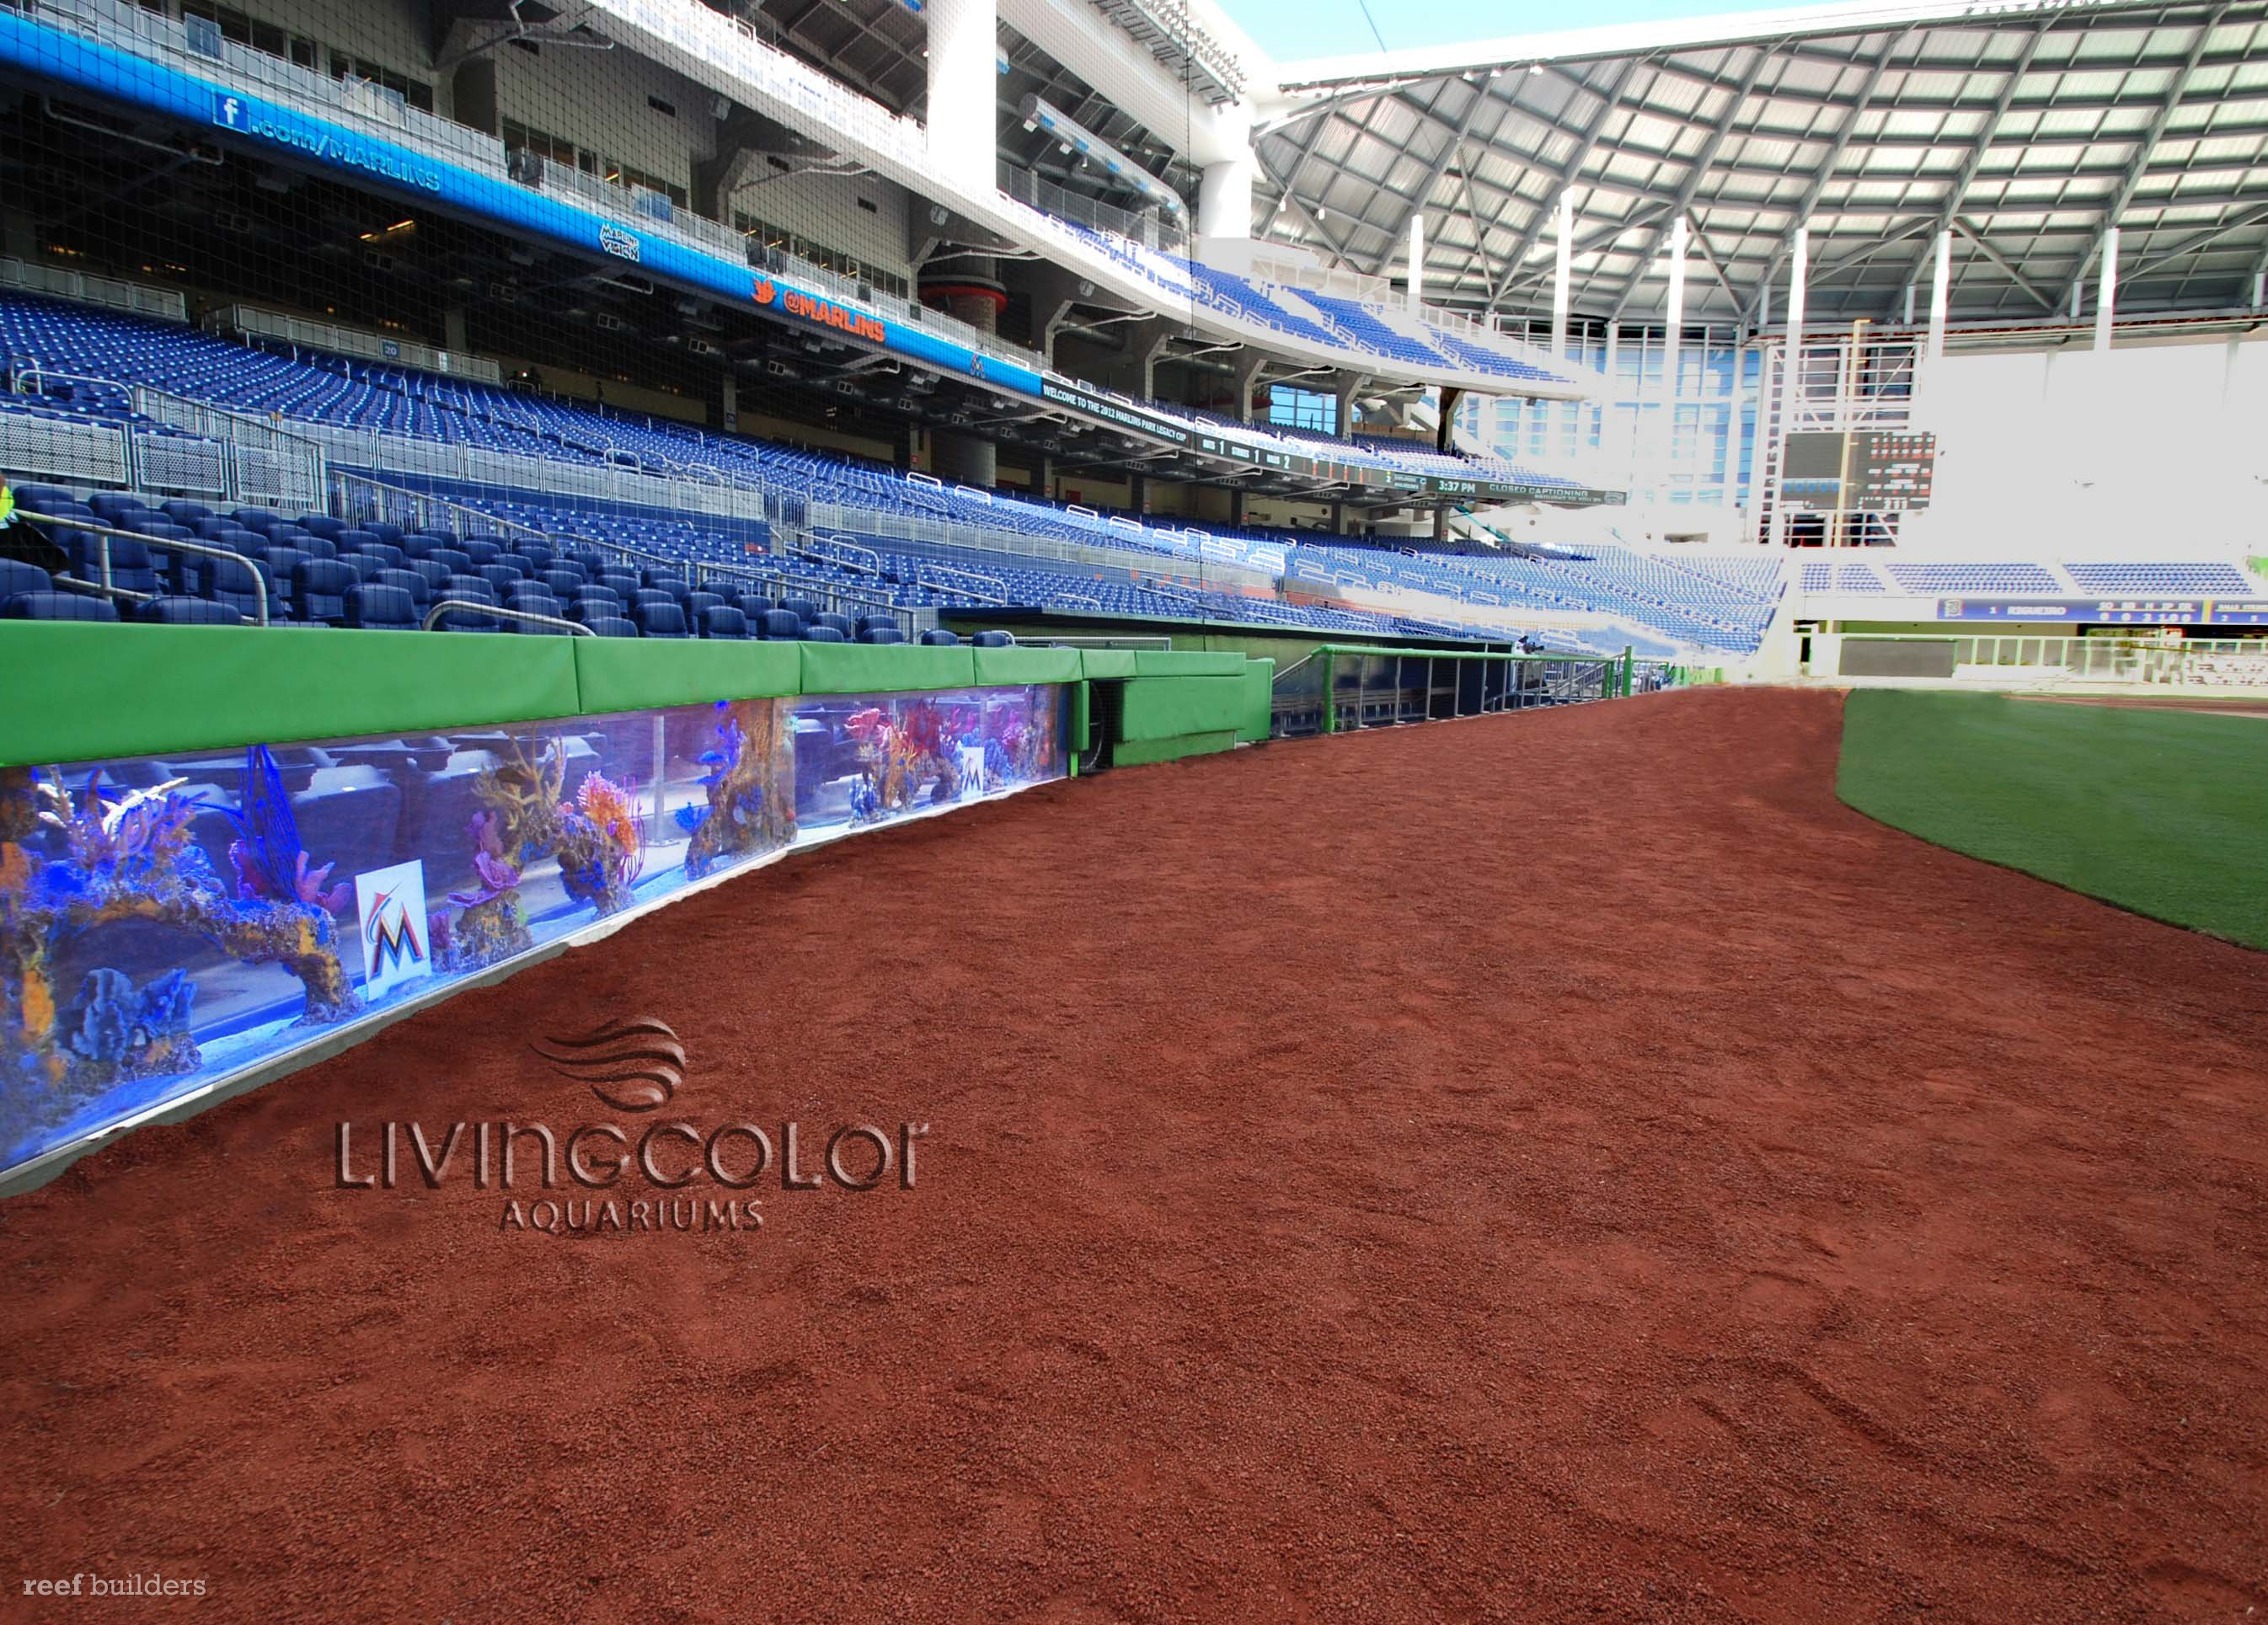 Mlb s miami marlins completes aquarium installation fish for Marlins fish tank